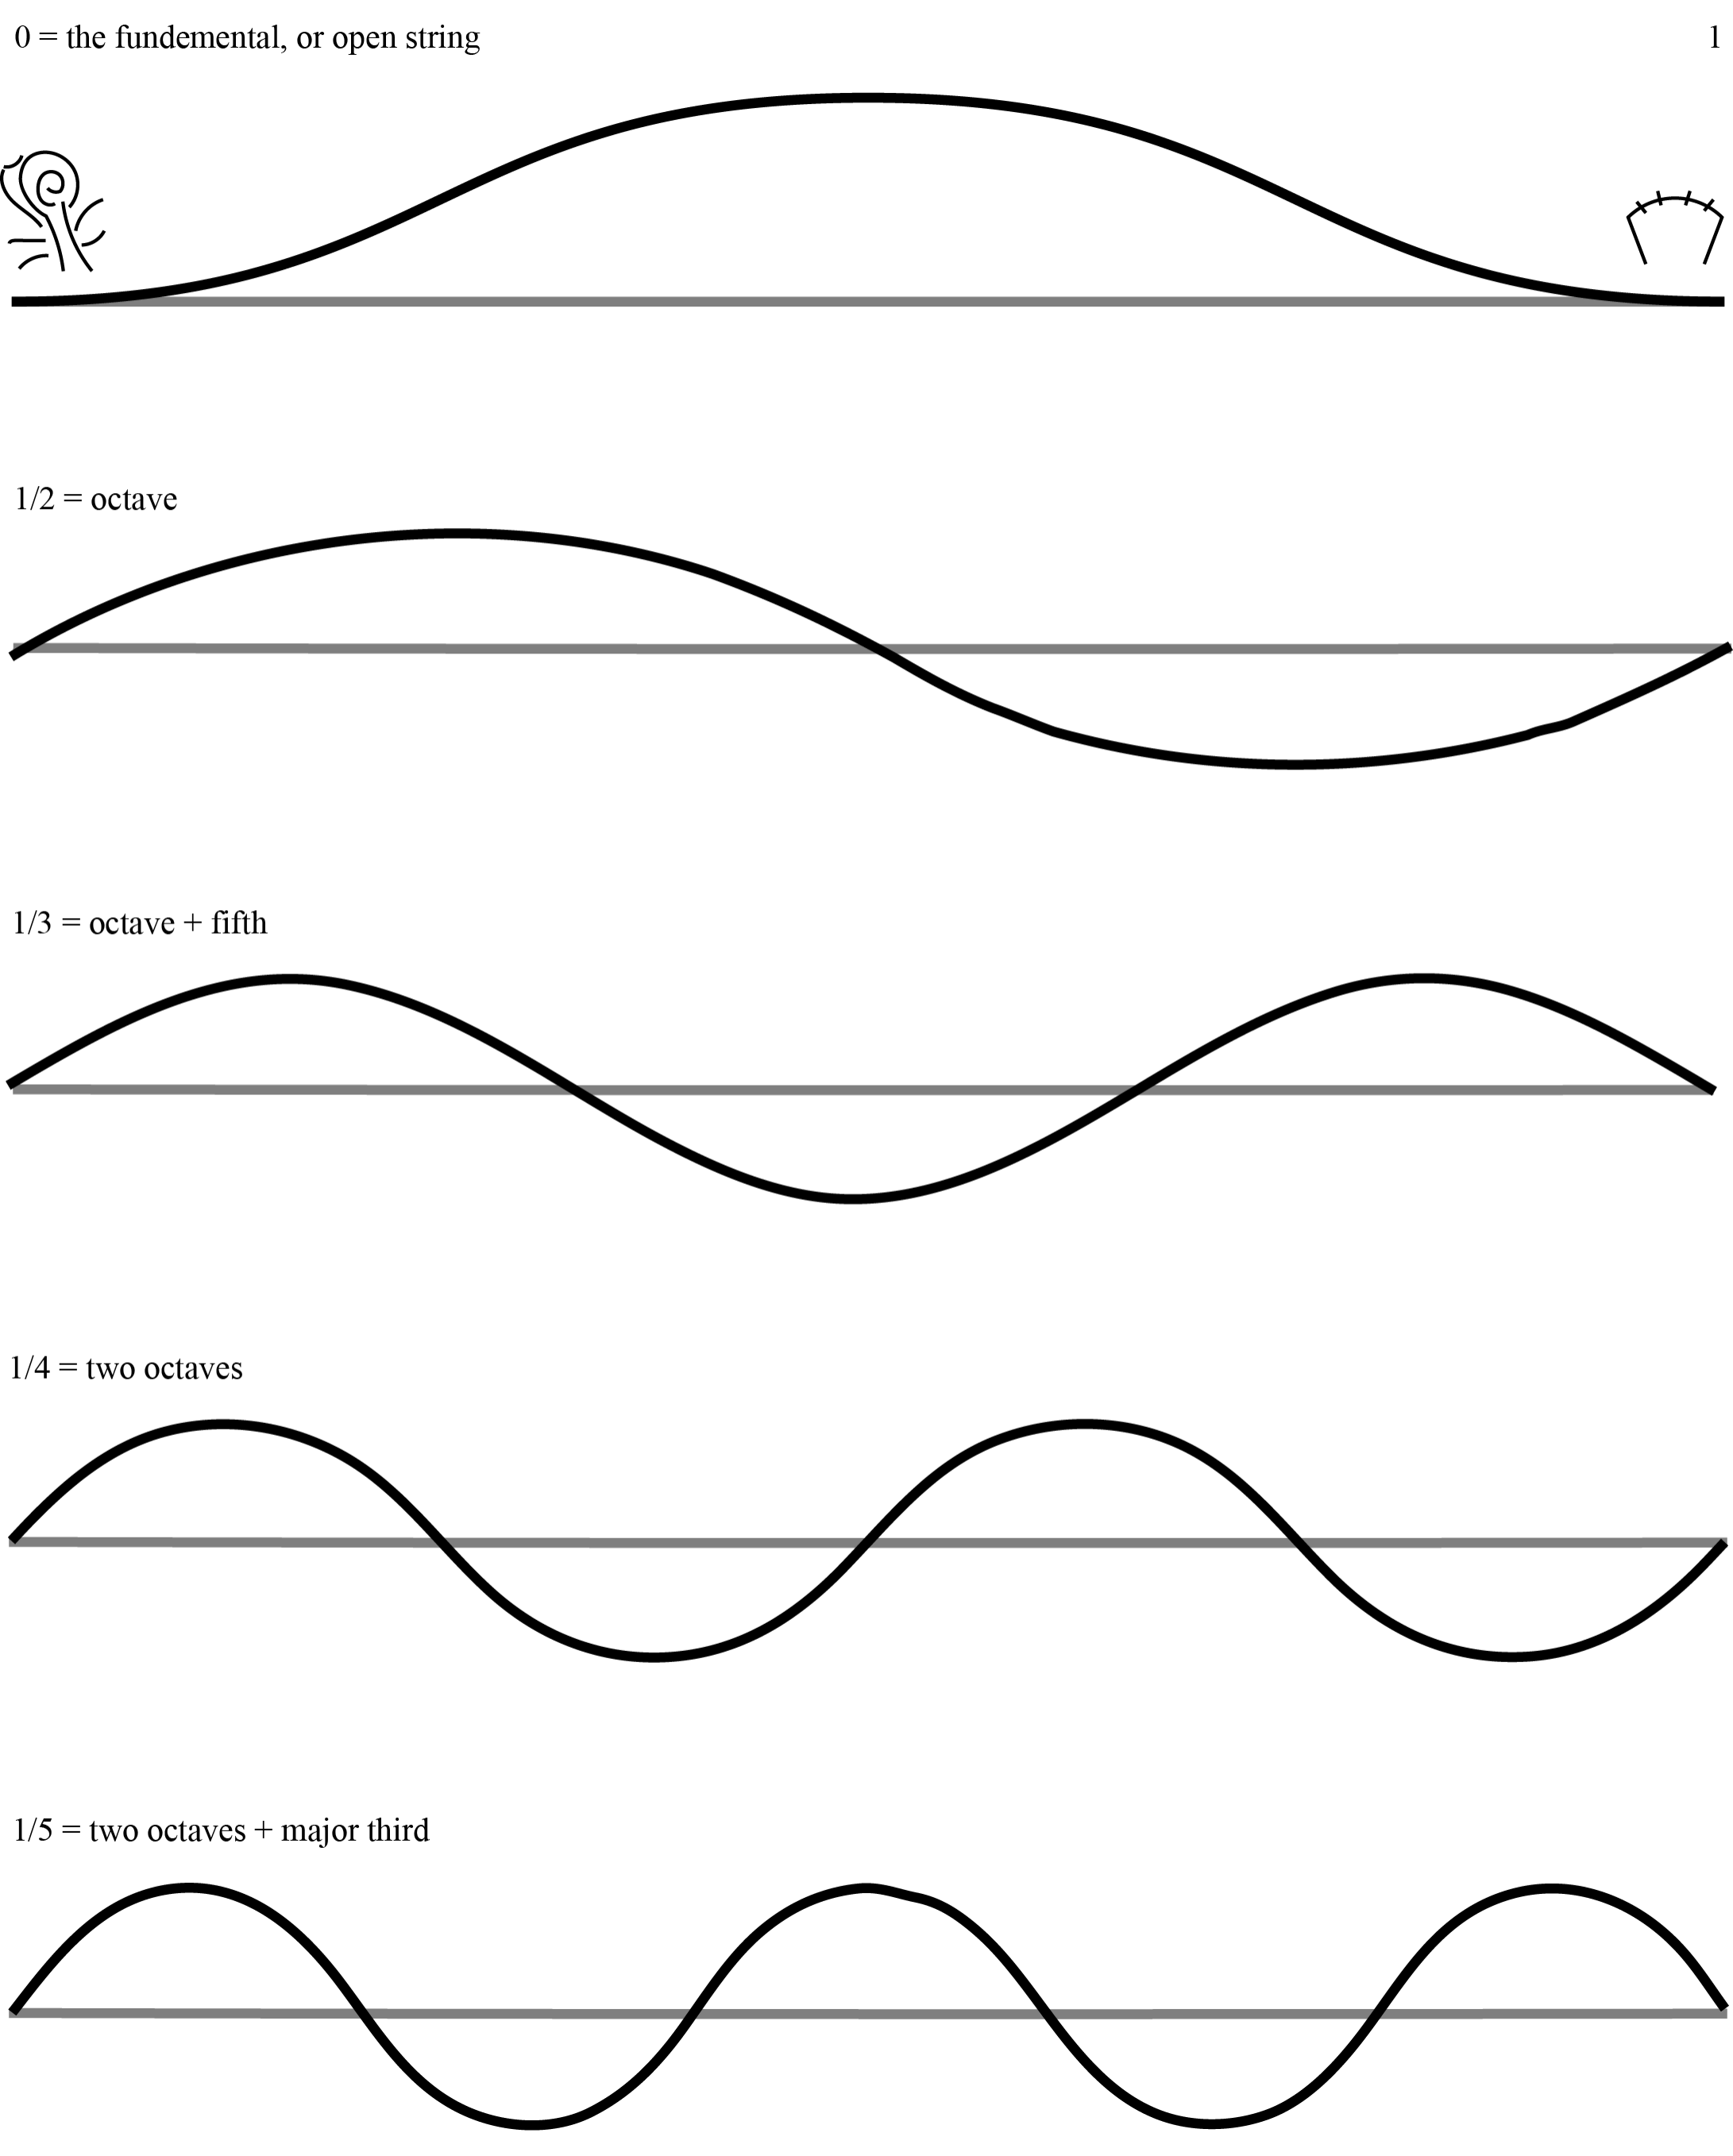 The Natural Harmonic Series and Fractions of the String. Diagram by Lanzilotti.